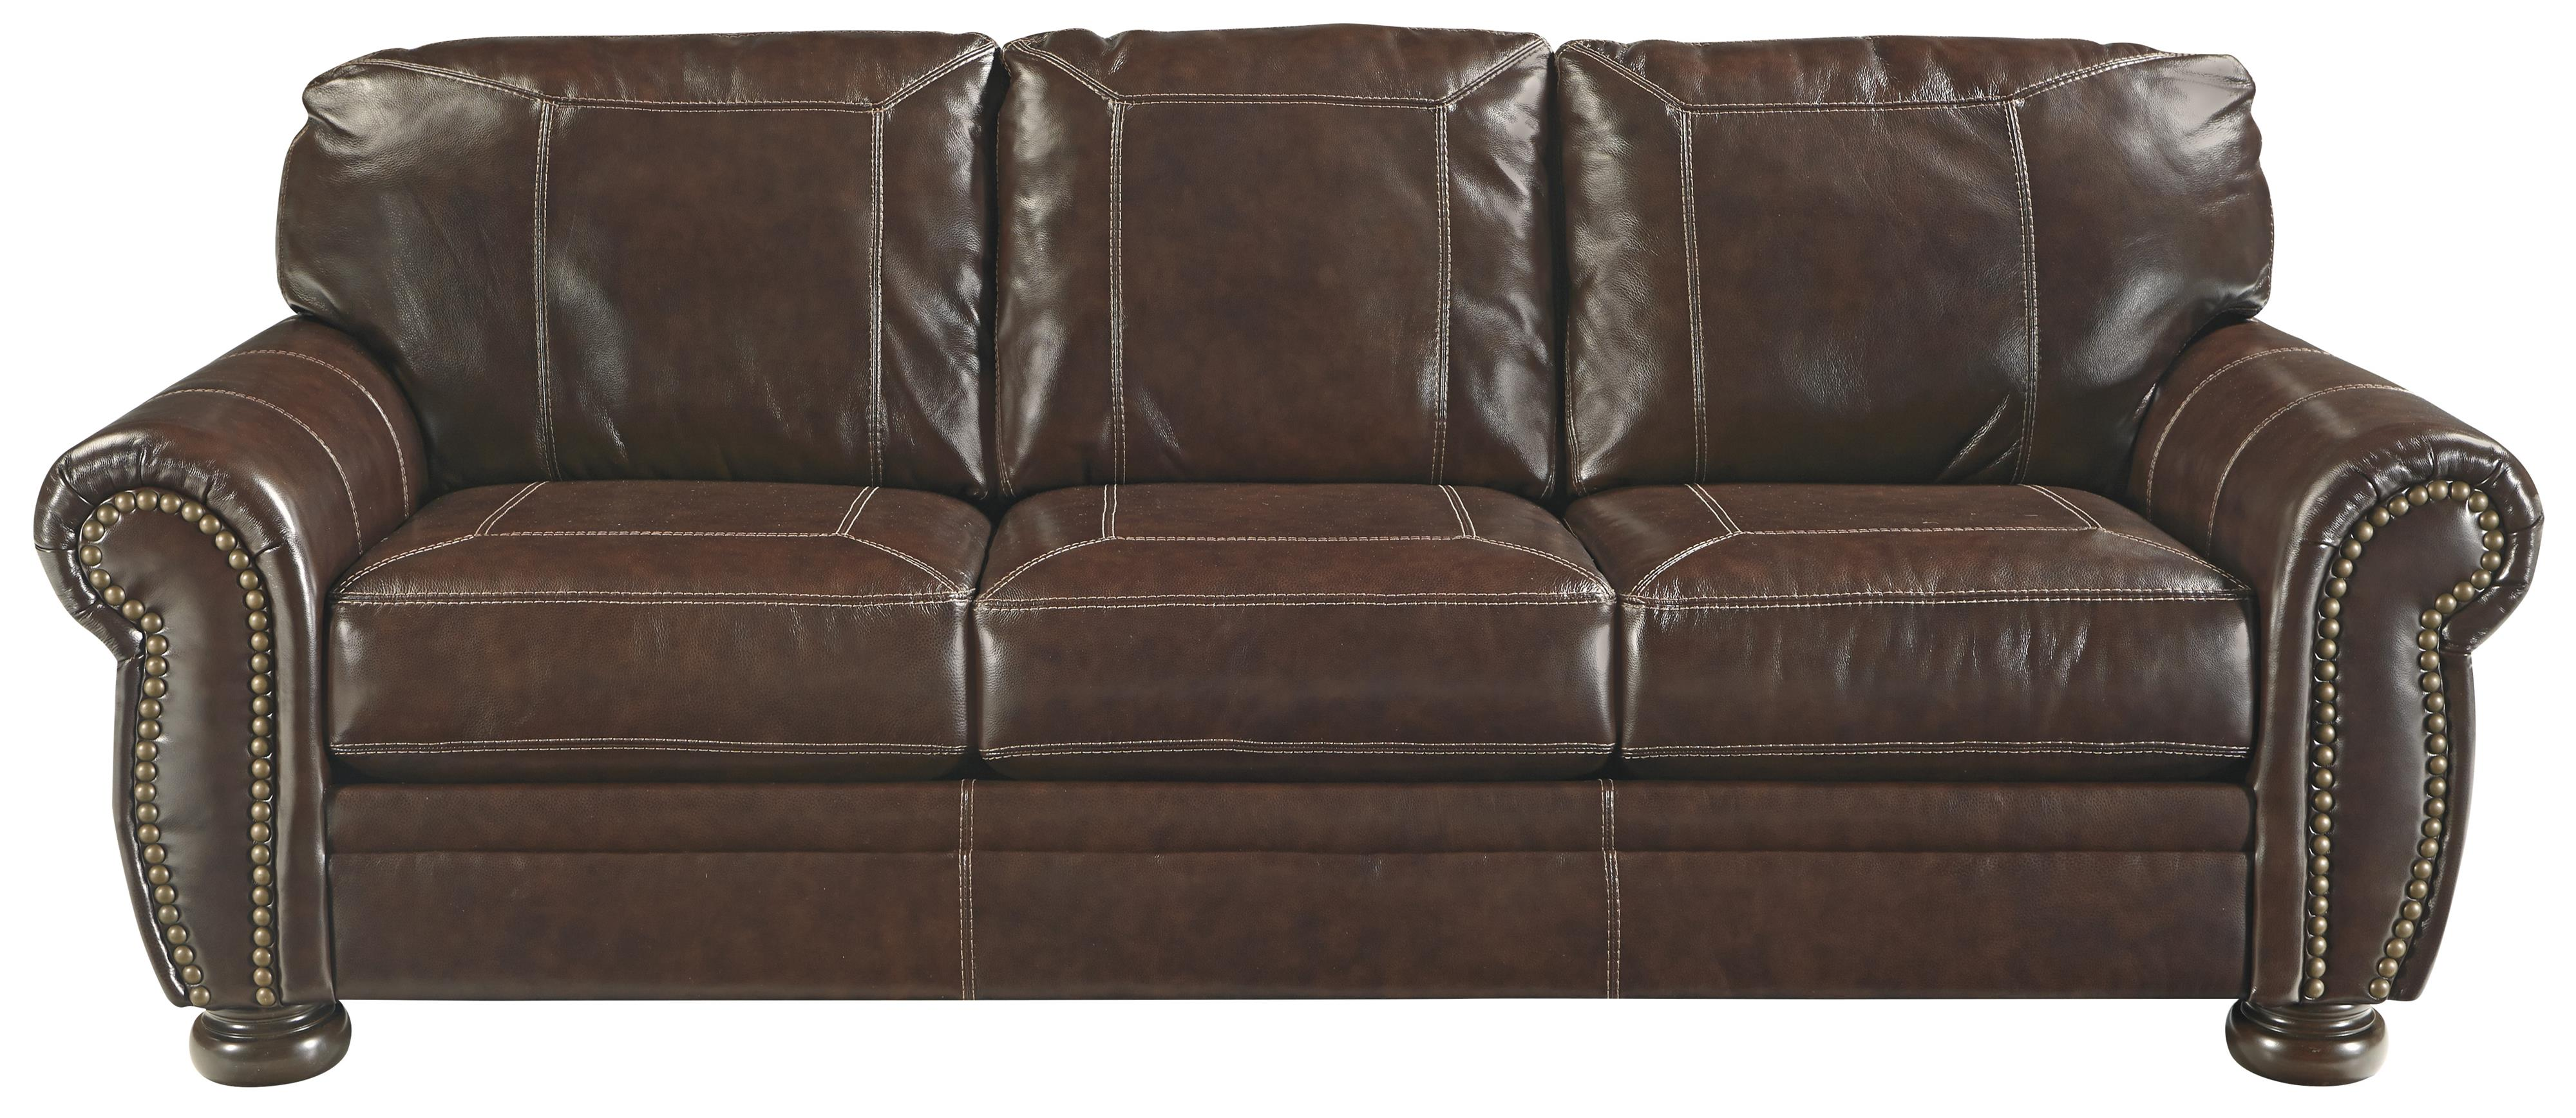 Signature Design by Ashley Banner Sofa - Item Number: 5040438